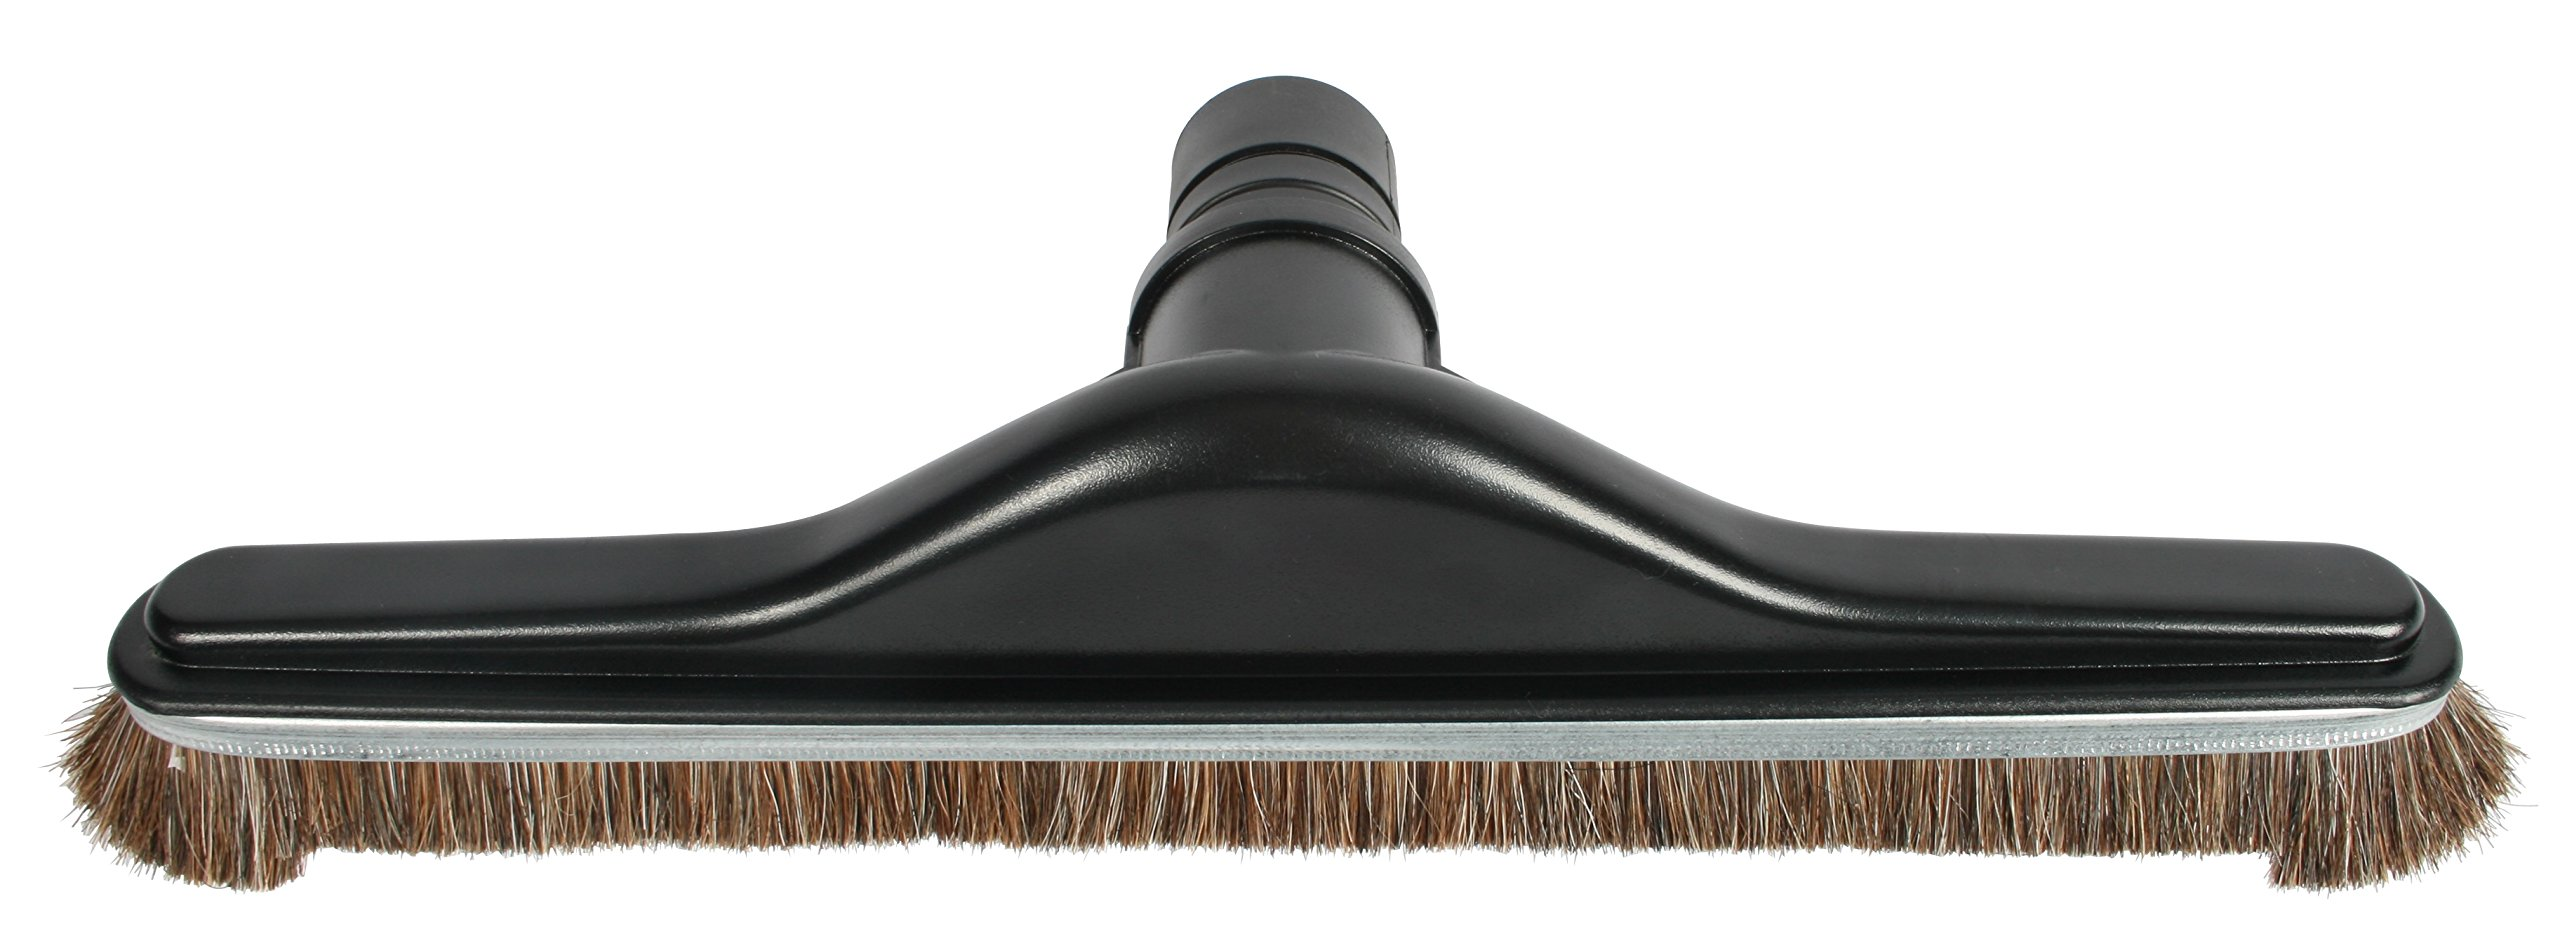 Cen-Tec Systems 68866 14'' Natural Fill Floor Brush for Commercial Back Packs and Canister Vacuums by Centec Systems